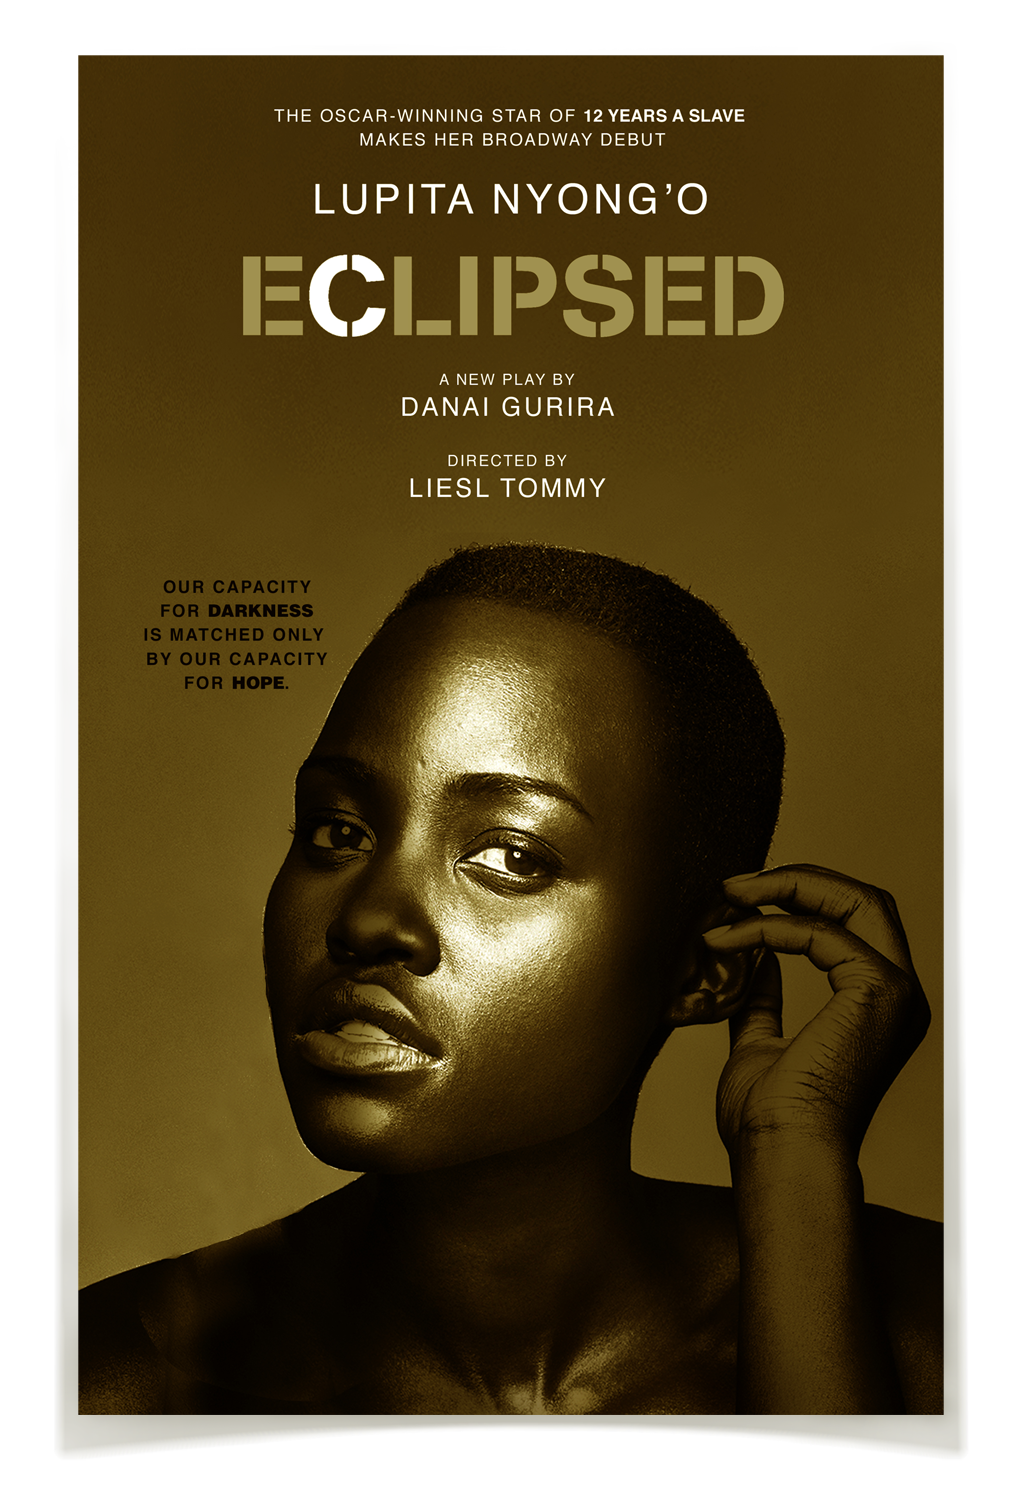 covell_design_eclipsed_lupita_nyong'o_2.png